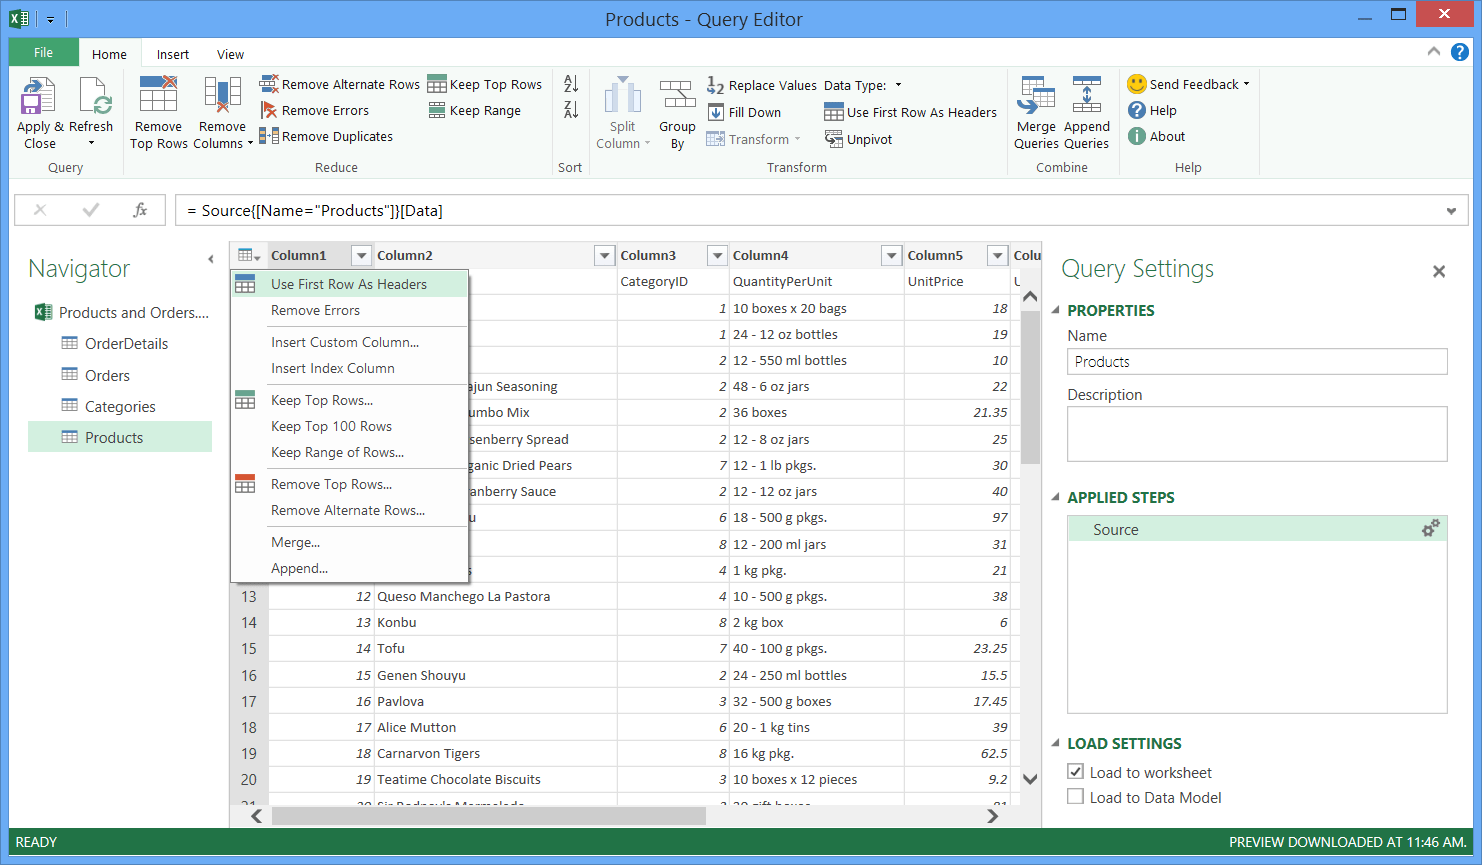 Merging Excel Sheets Into One Sheet